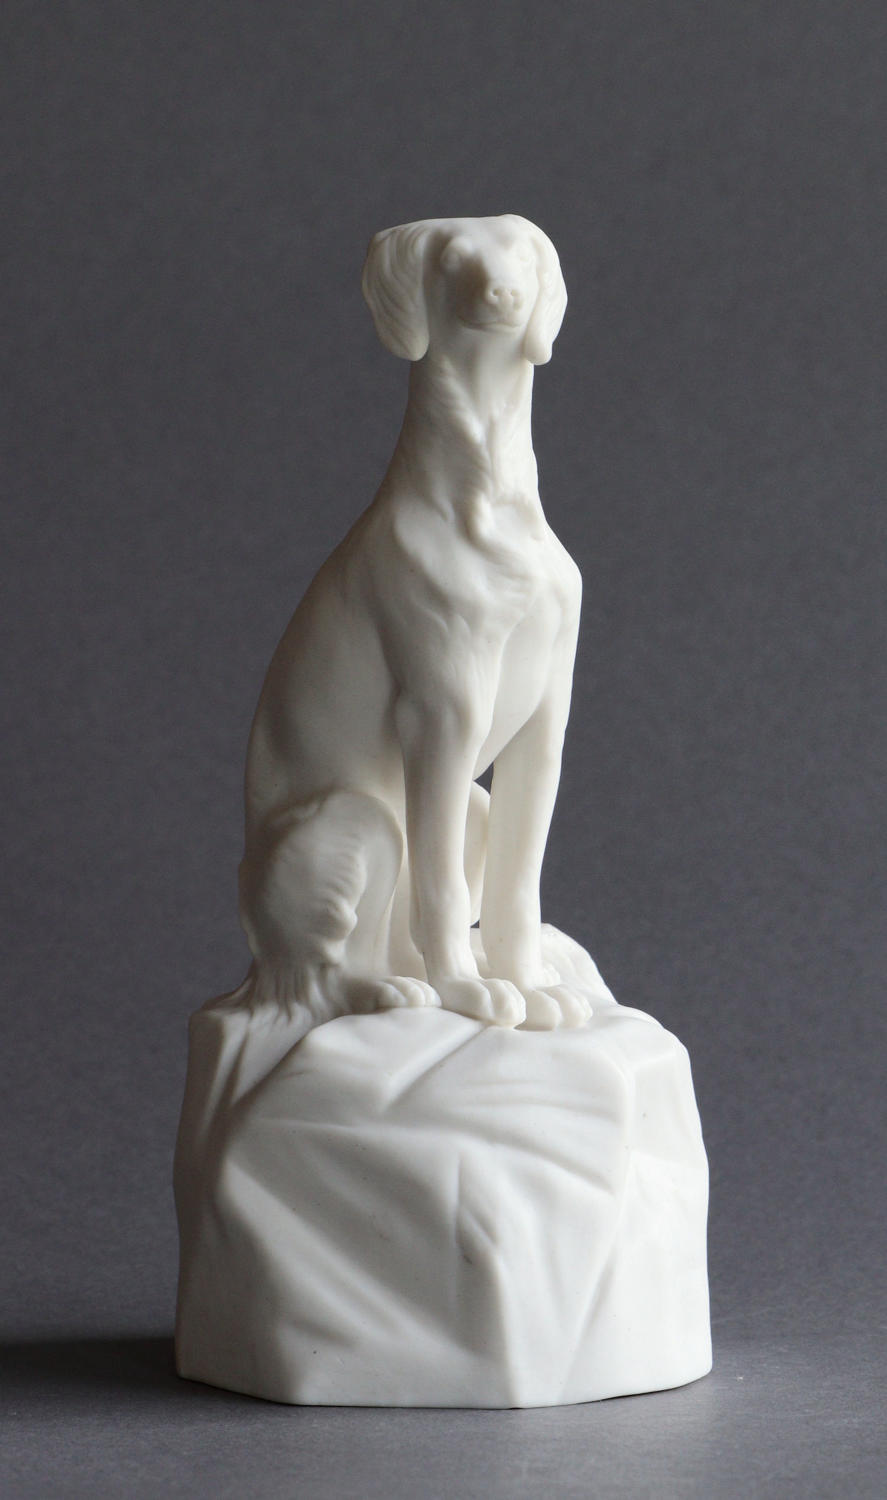 A Minton Parian figure of an Italian Greyhound or Saluki